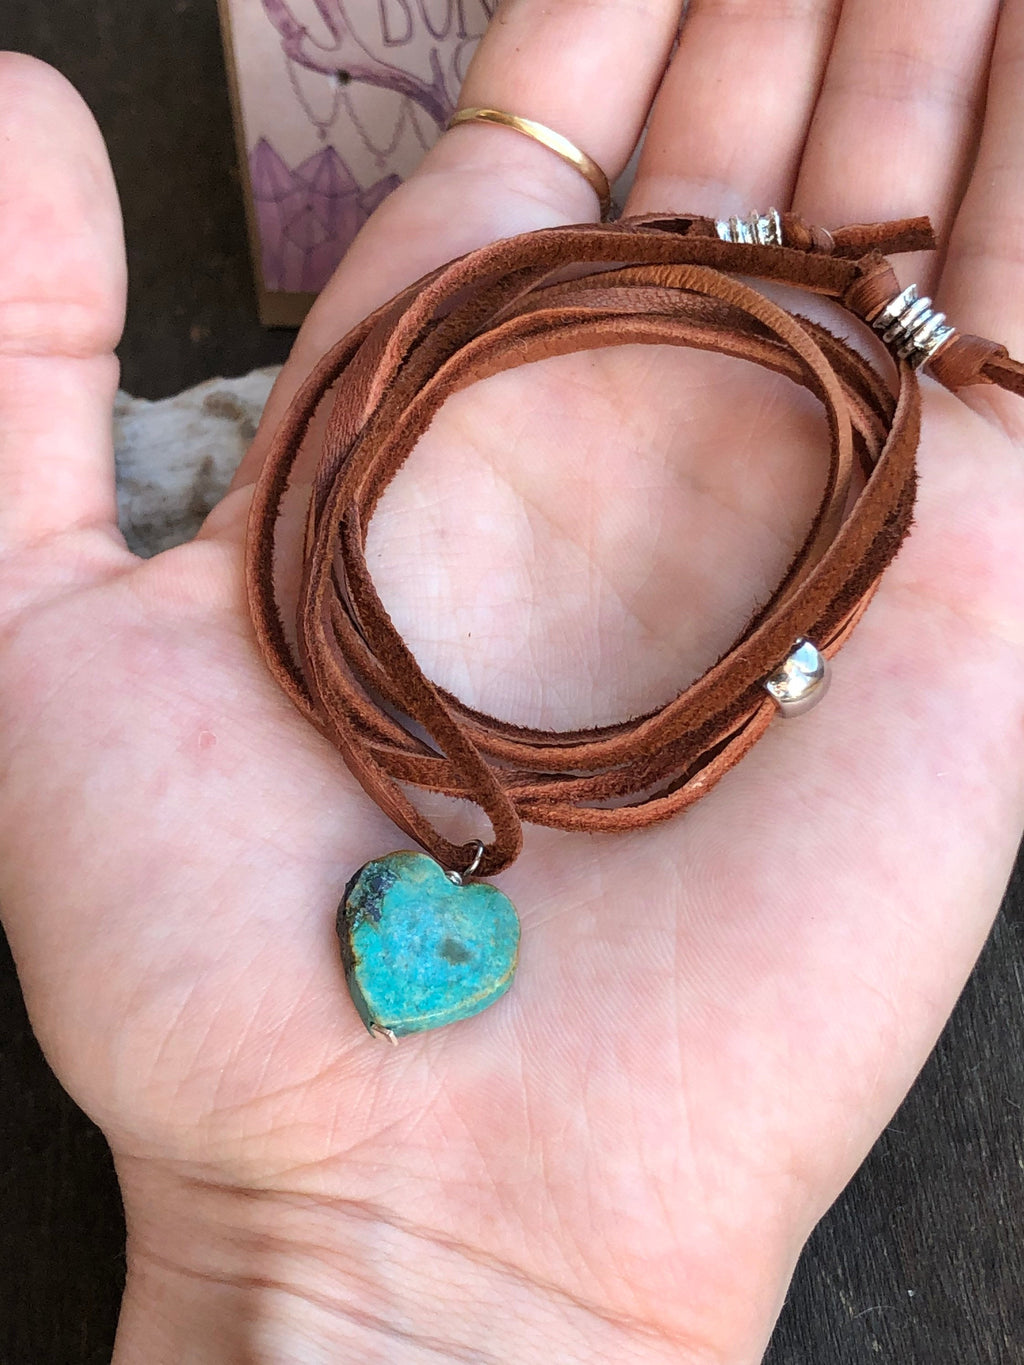 Made to Order Vintage Turquoise Heart Leather Wrap Necklace Bracelet Convertible Versatile Adjustable Deerskin Heart Necklace